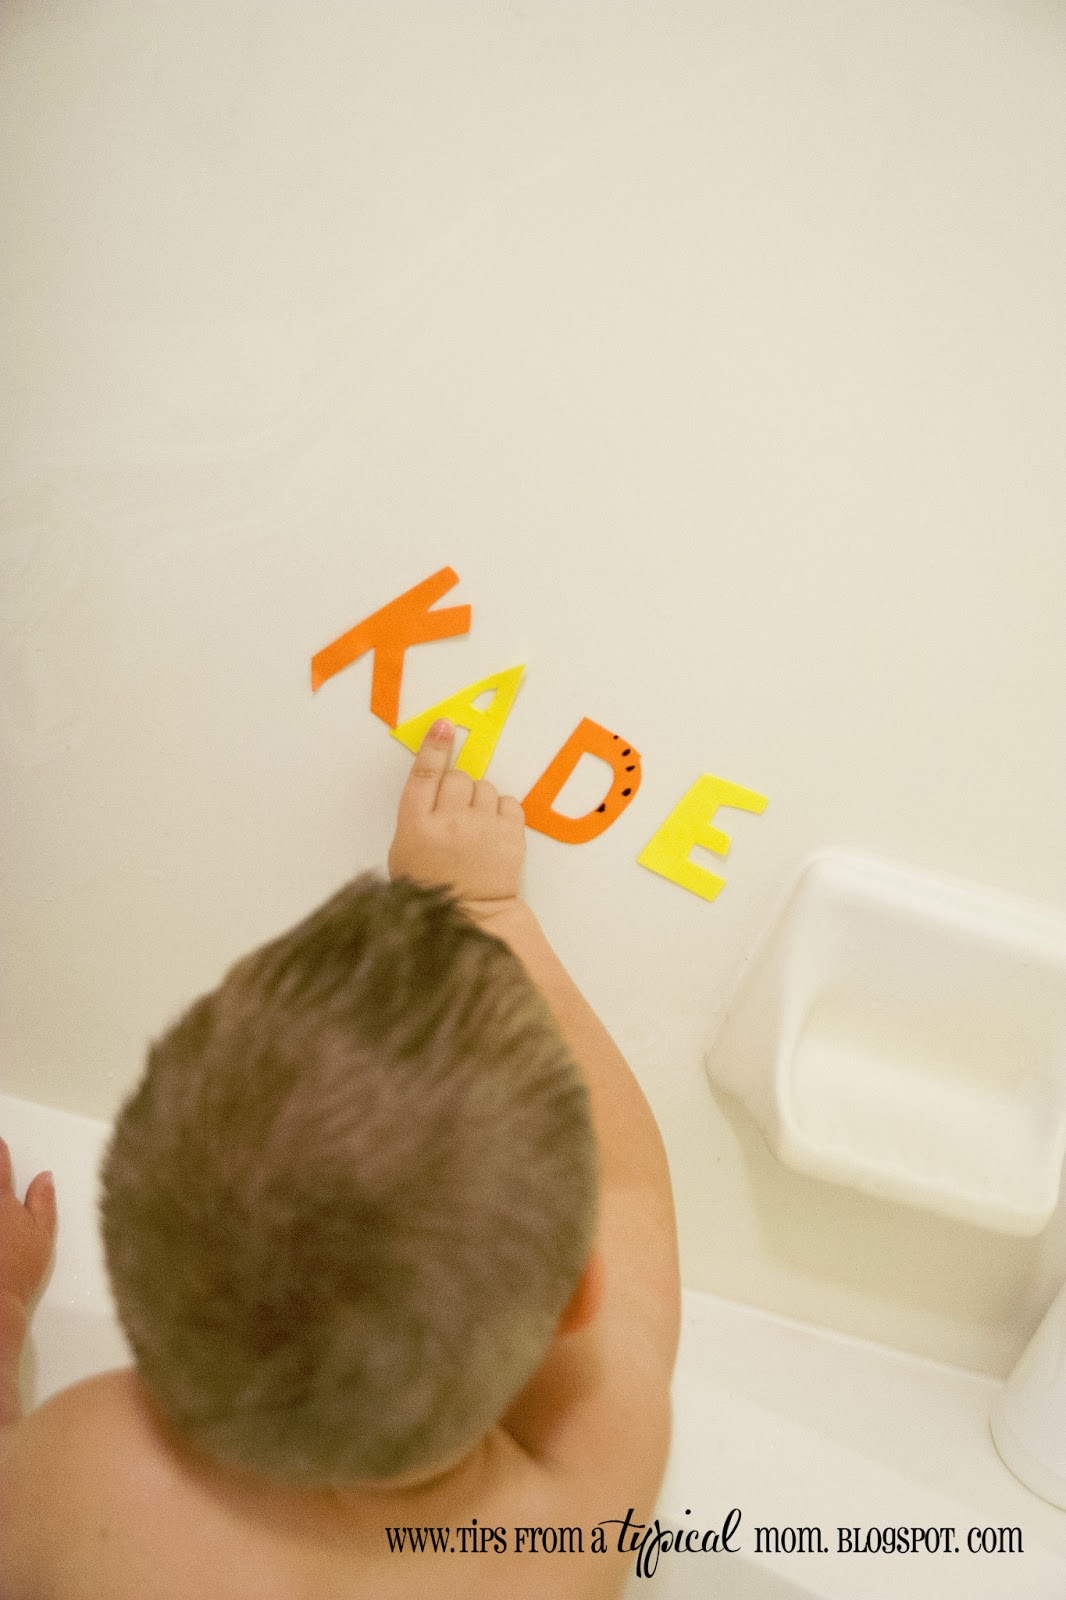 DIY Homemade Bath Toys For Toddlers Tips From A Typical Mom